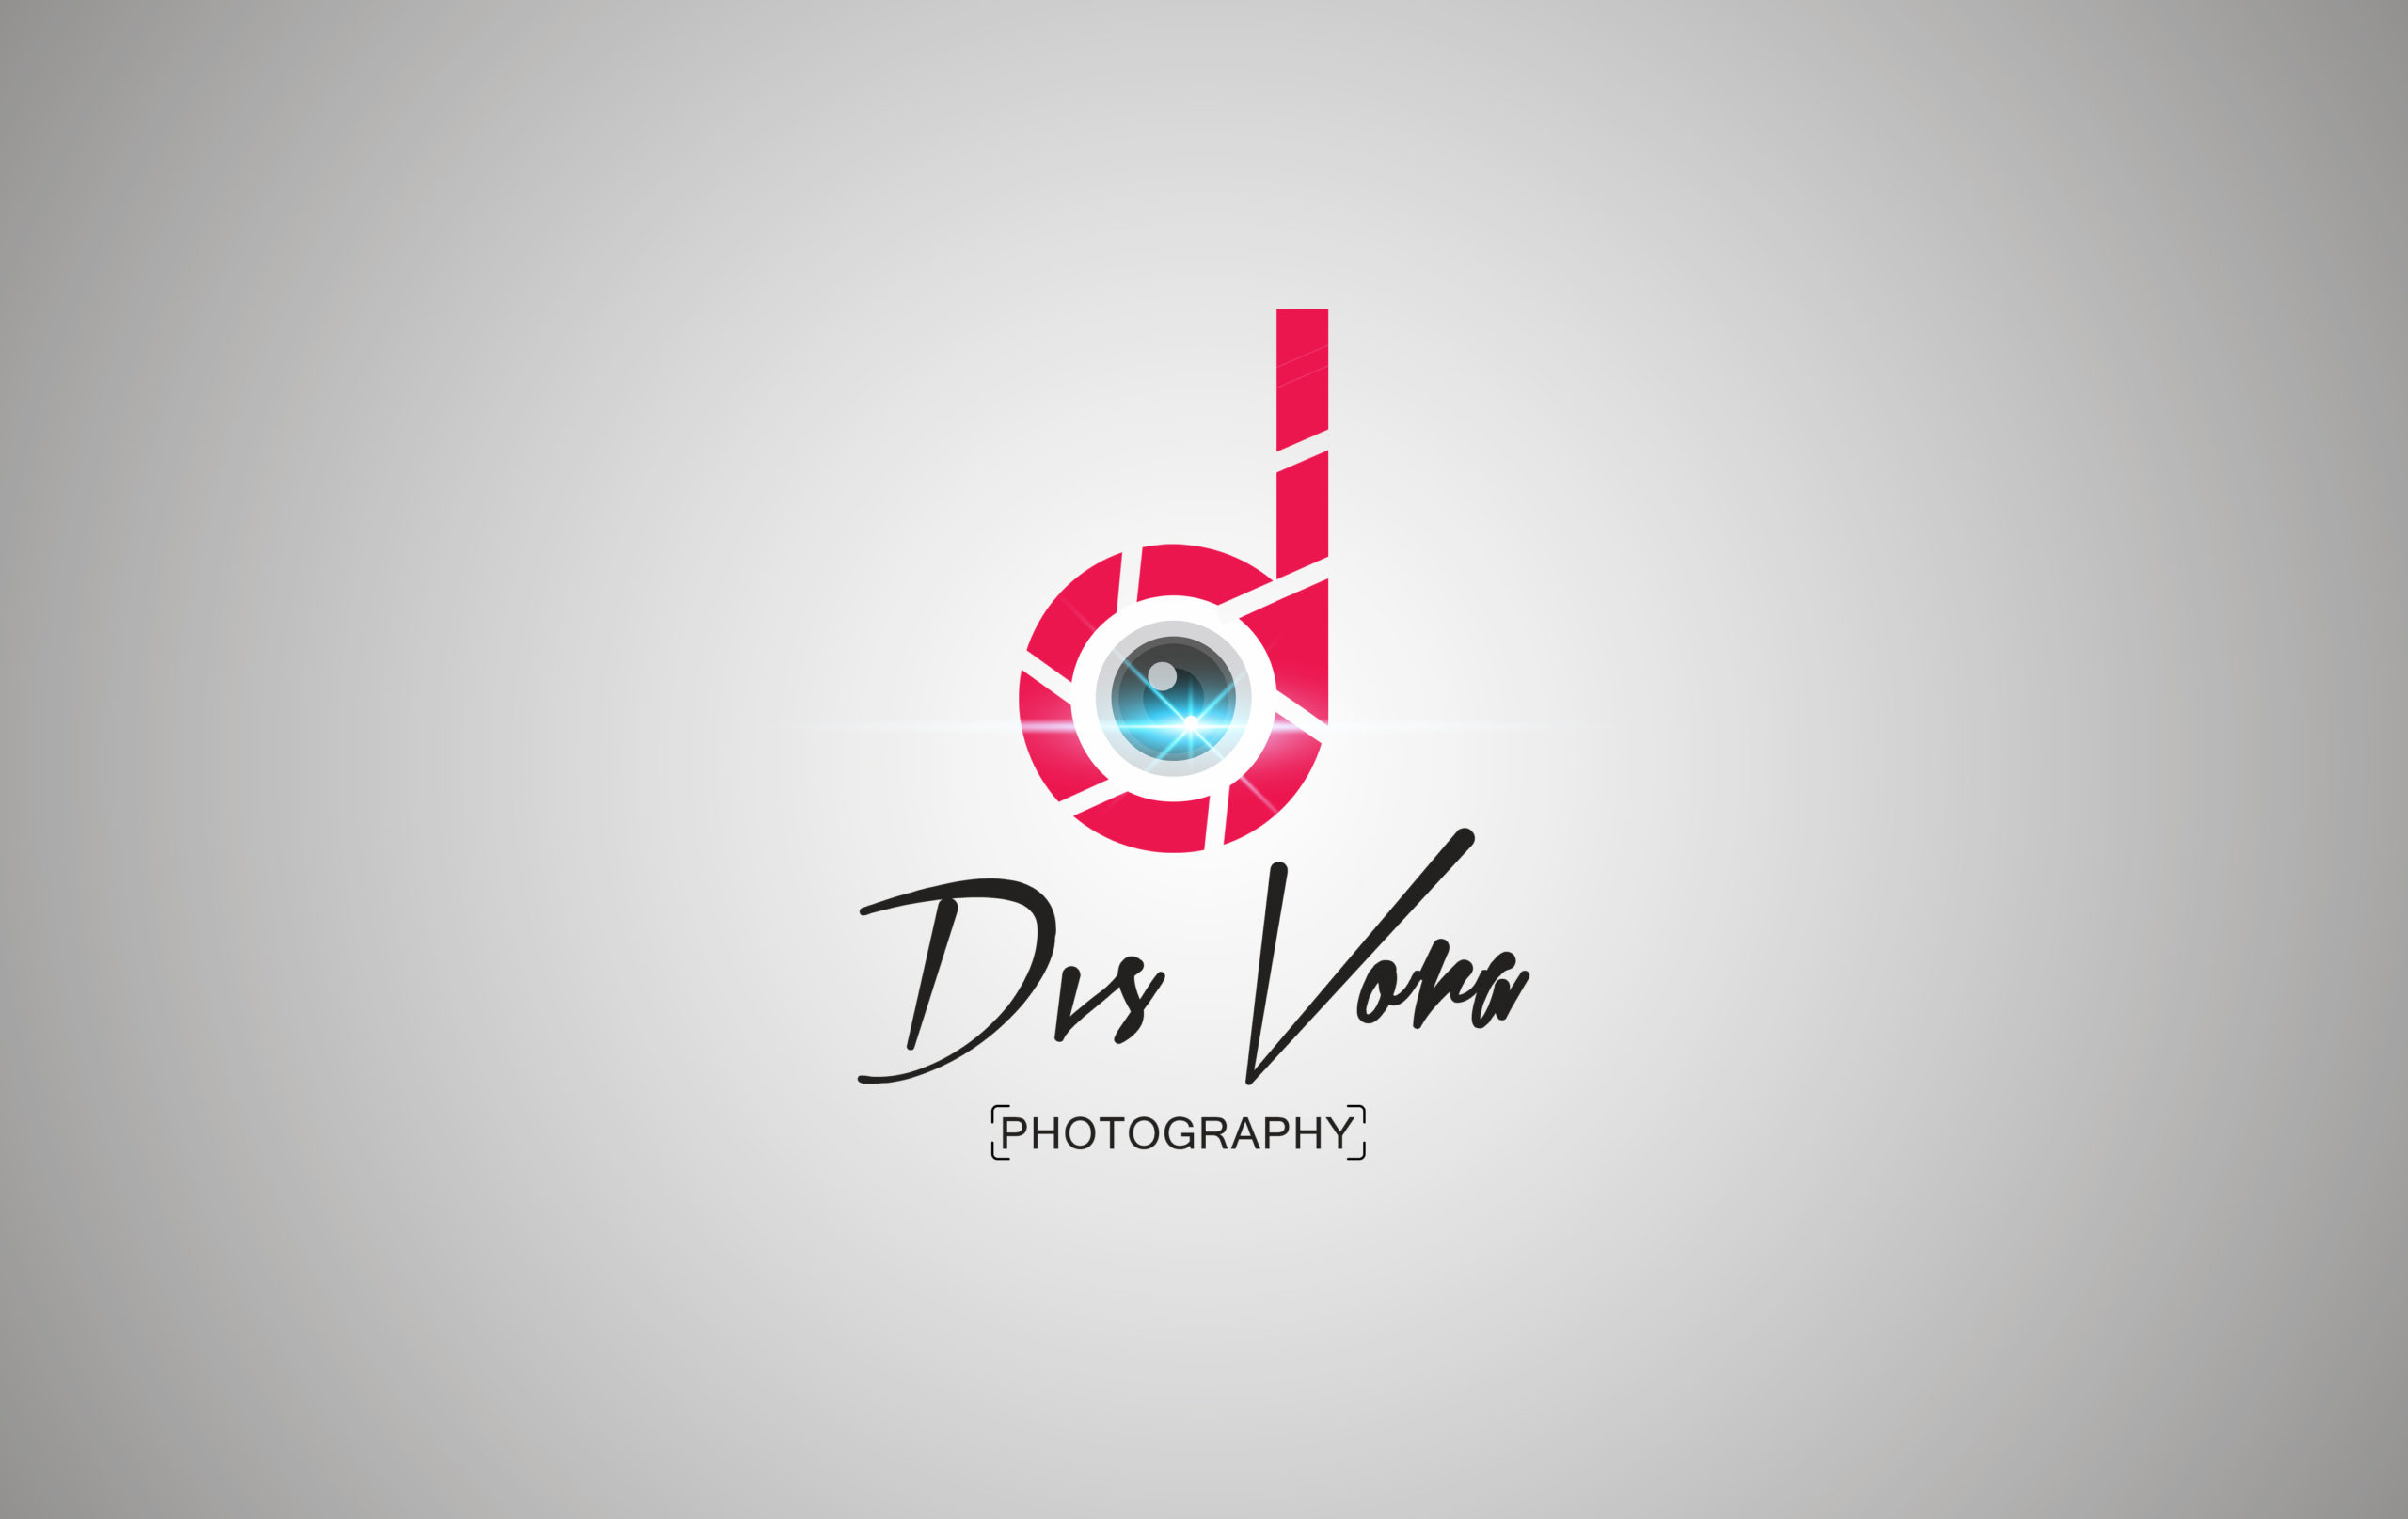 Dvs Vora photography logo design by Badri Design